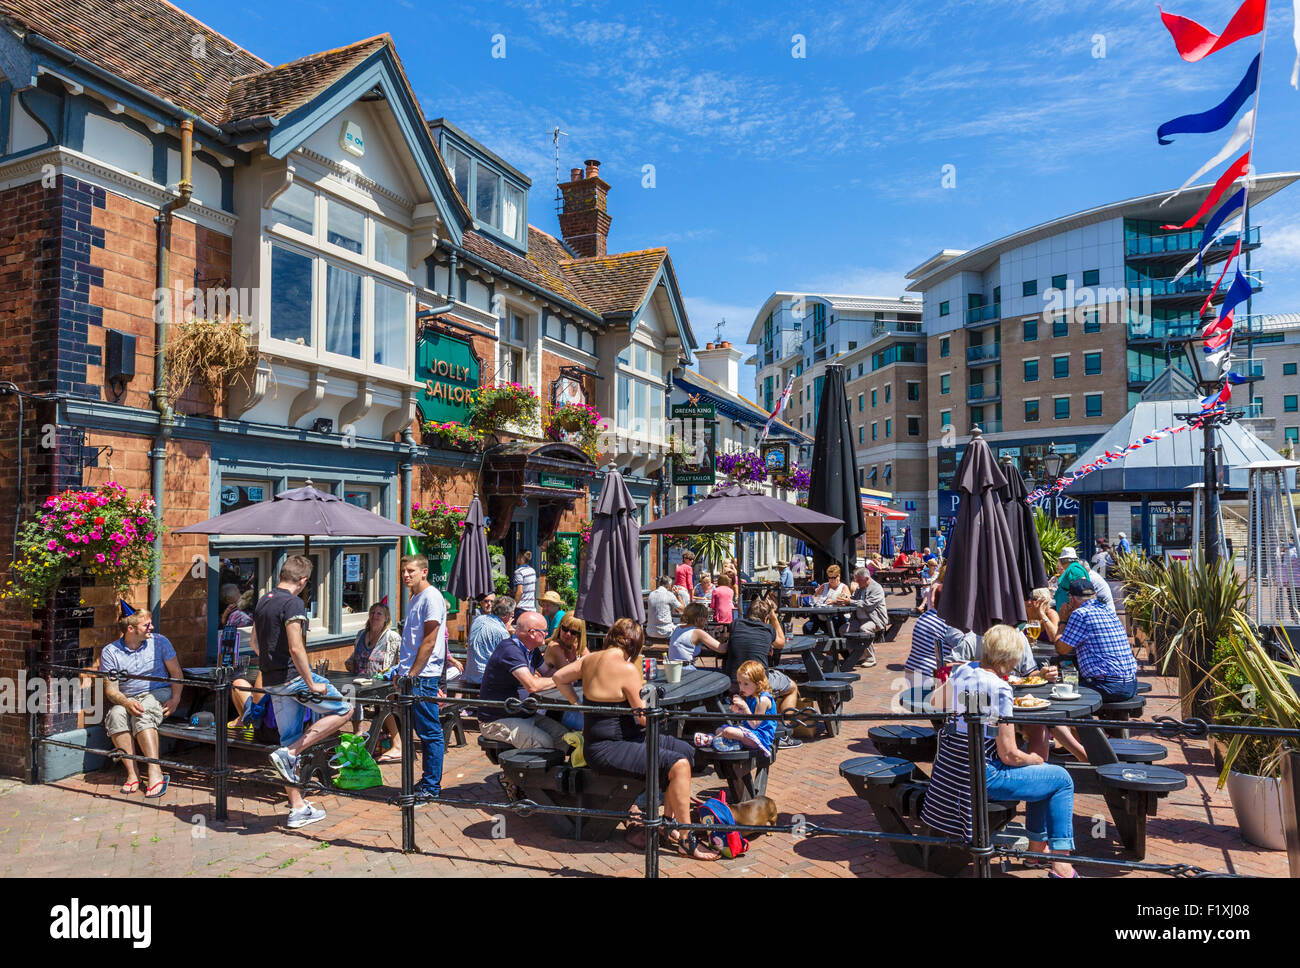 People sitting outside the Jolly Sailor pub on The Quay in Poole, Dorset, England, UK - Stock Image